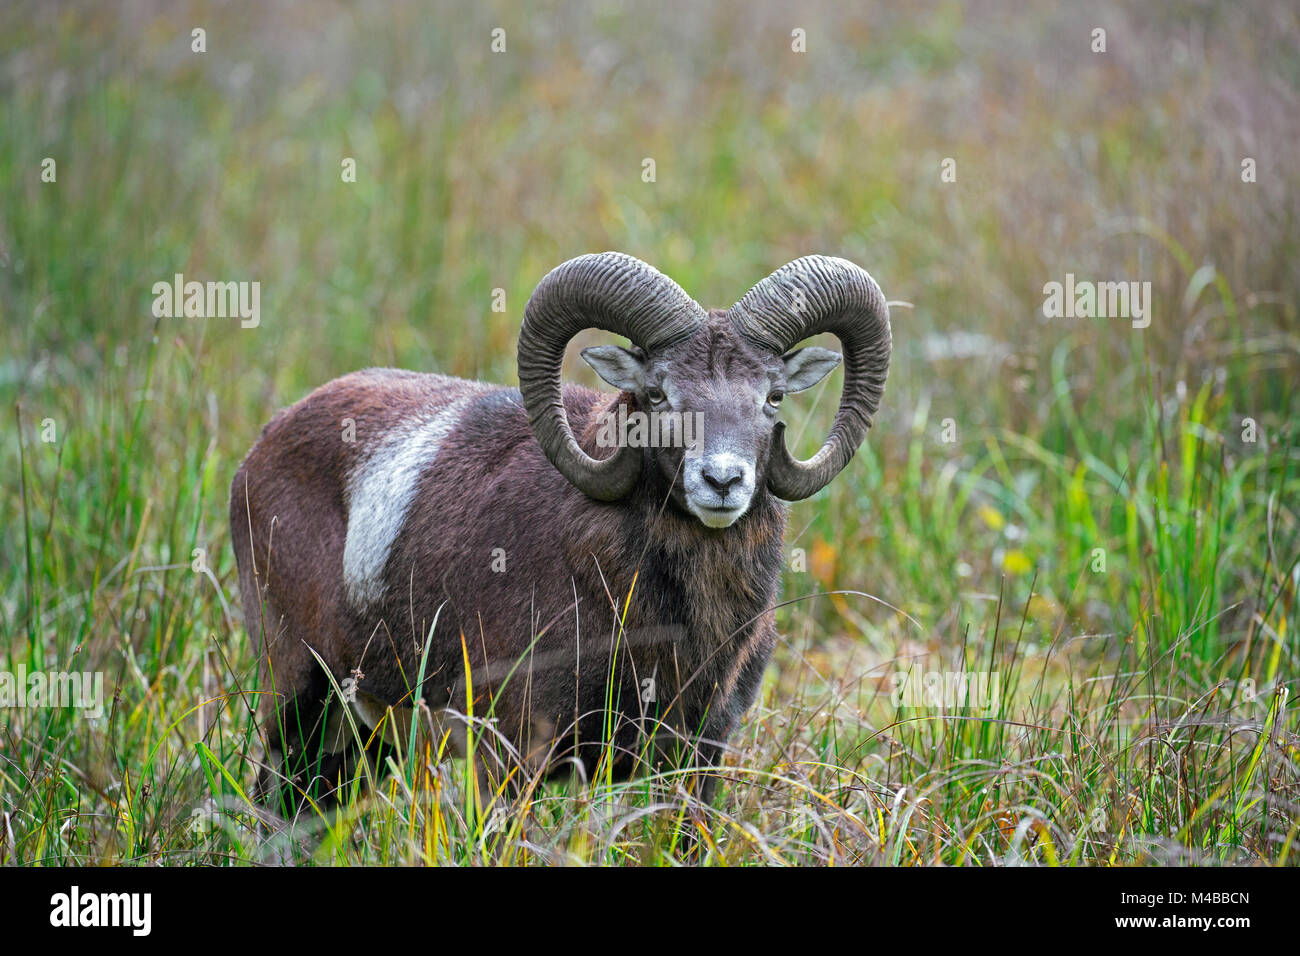 European mouflon (Ovis gmelini musimon / Ovis ammon / Ovis orientalis musimon) ram with big horns in grassland in - Stock Image